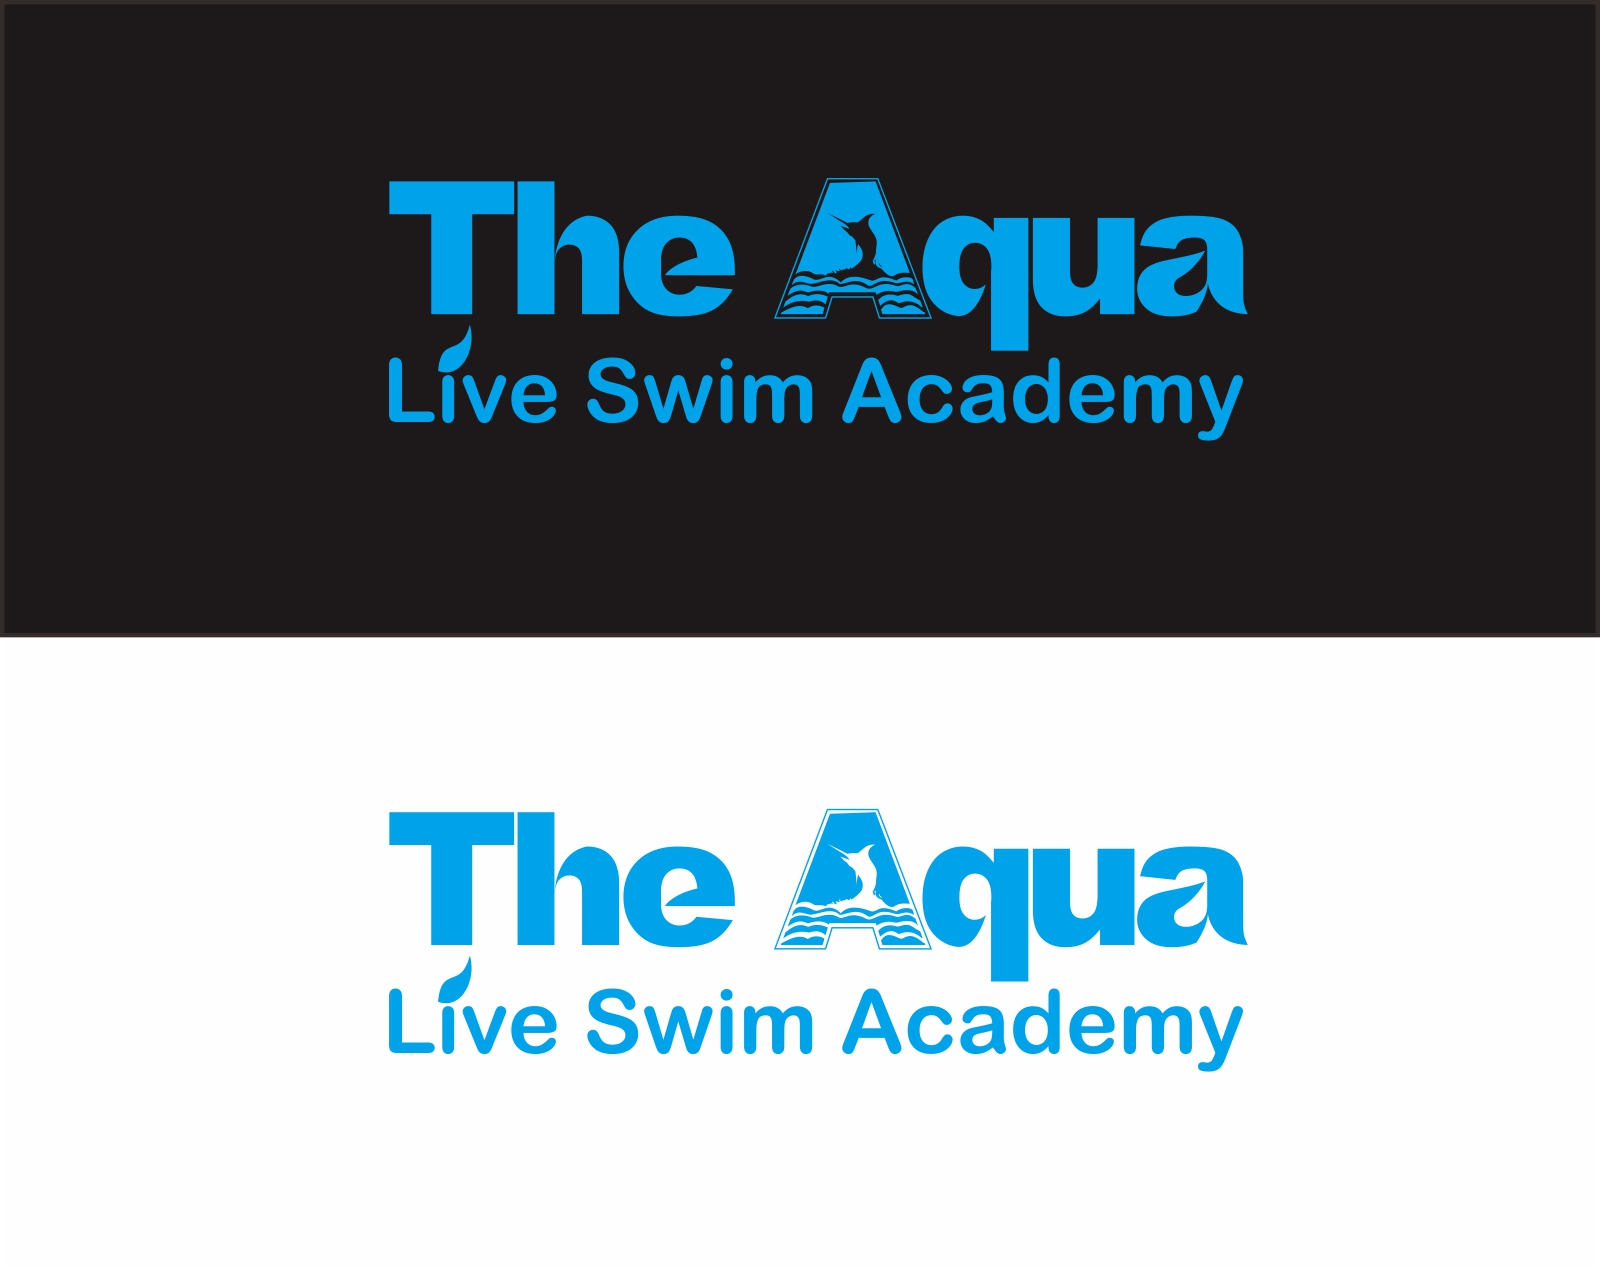 Logo Design by Muhammad Faris - Entry No. 117 in the Logo Design Contest Artistic Logo Design Wanted for The Aqua Life Swim Academy.